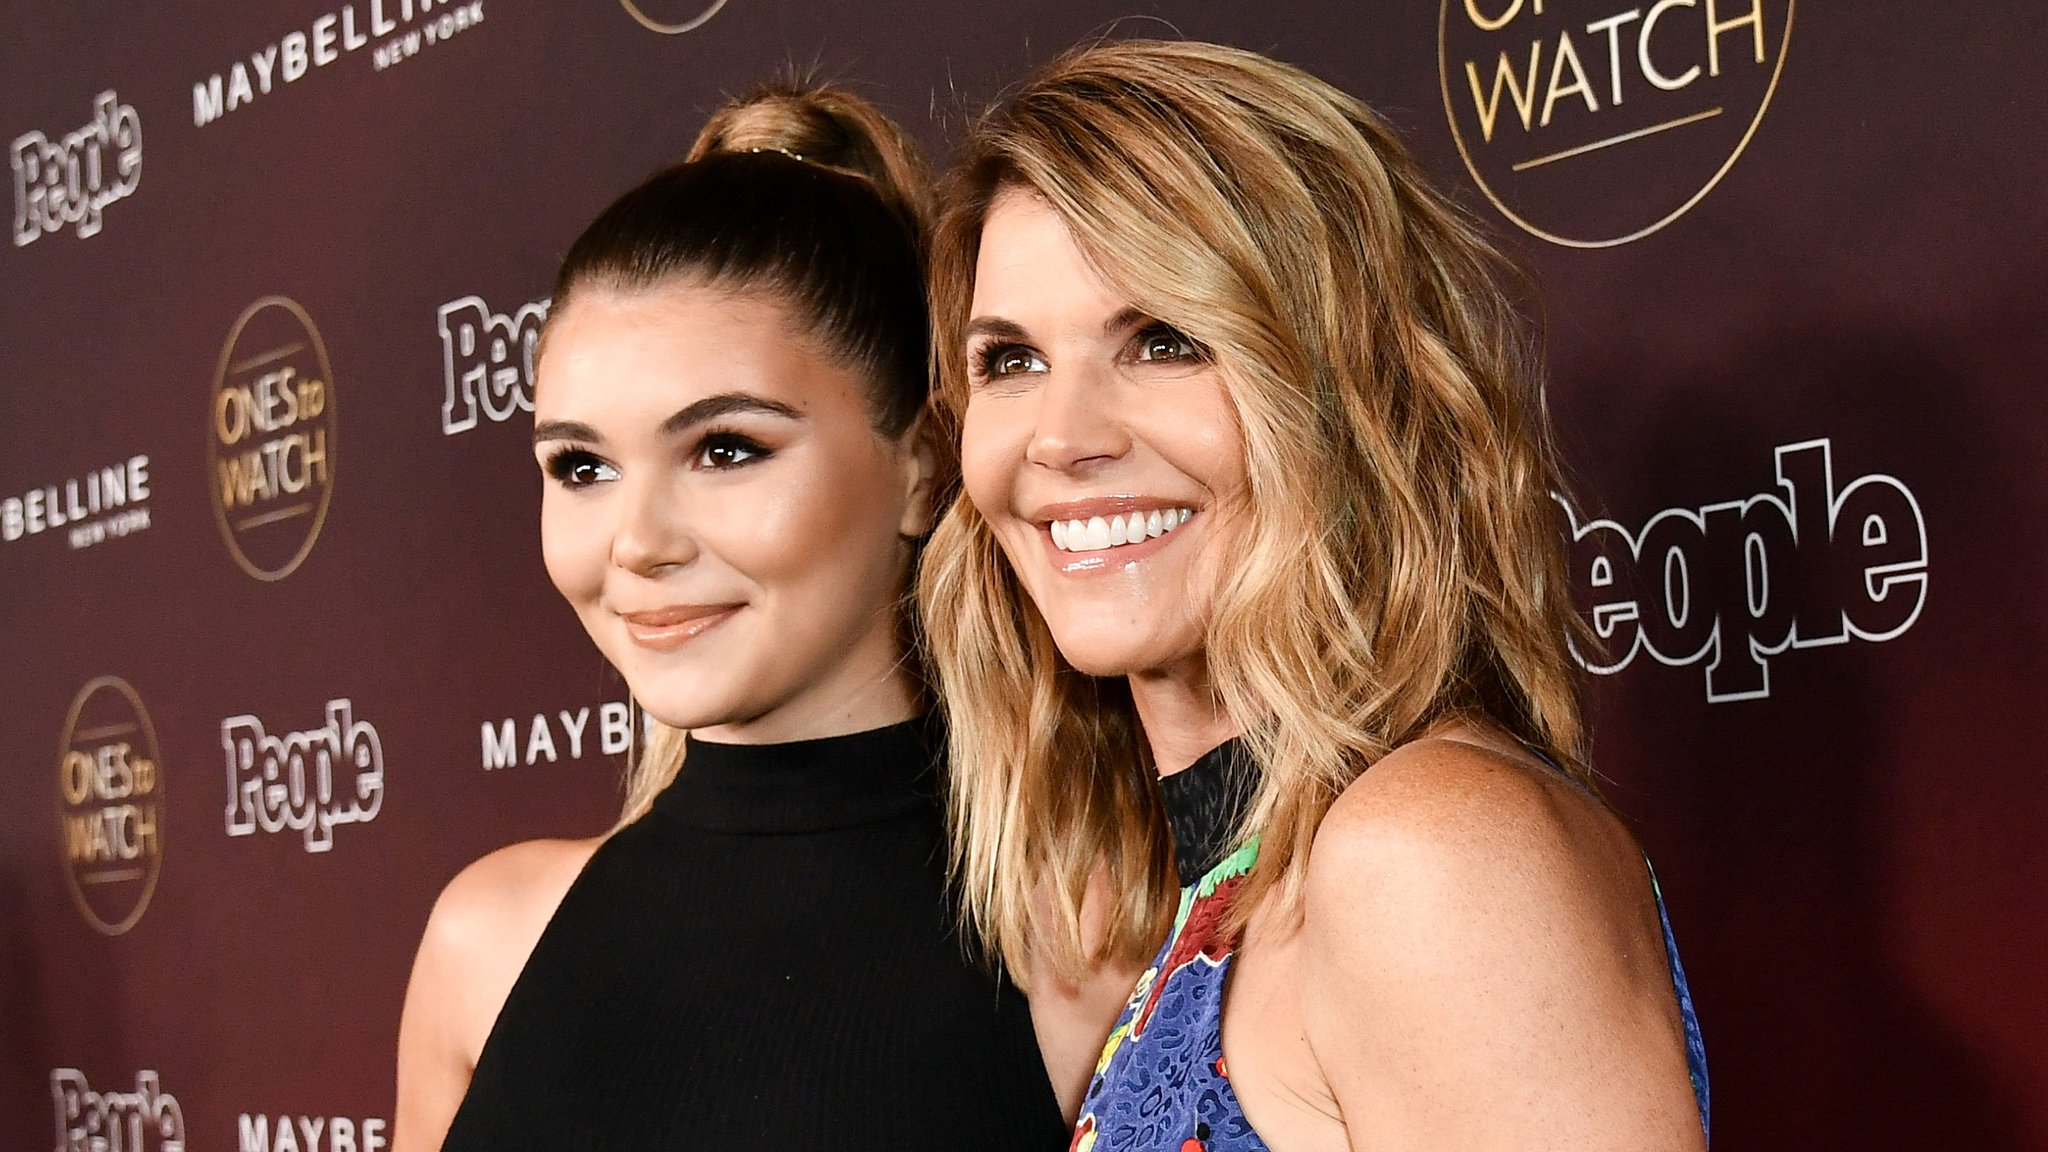 Sephora cuts ties with Lori Loughlin's daughter Olivia Jade https://t.co/k5zL4LIzYx https://t.co/DWh5nccSev